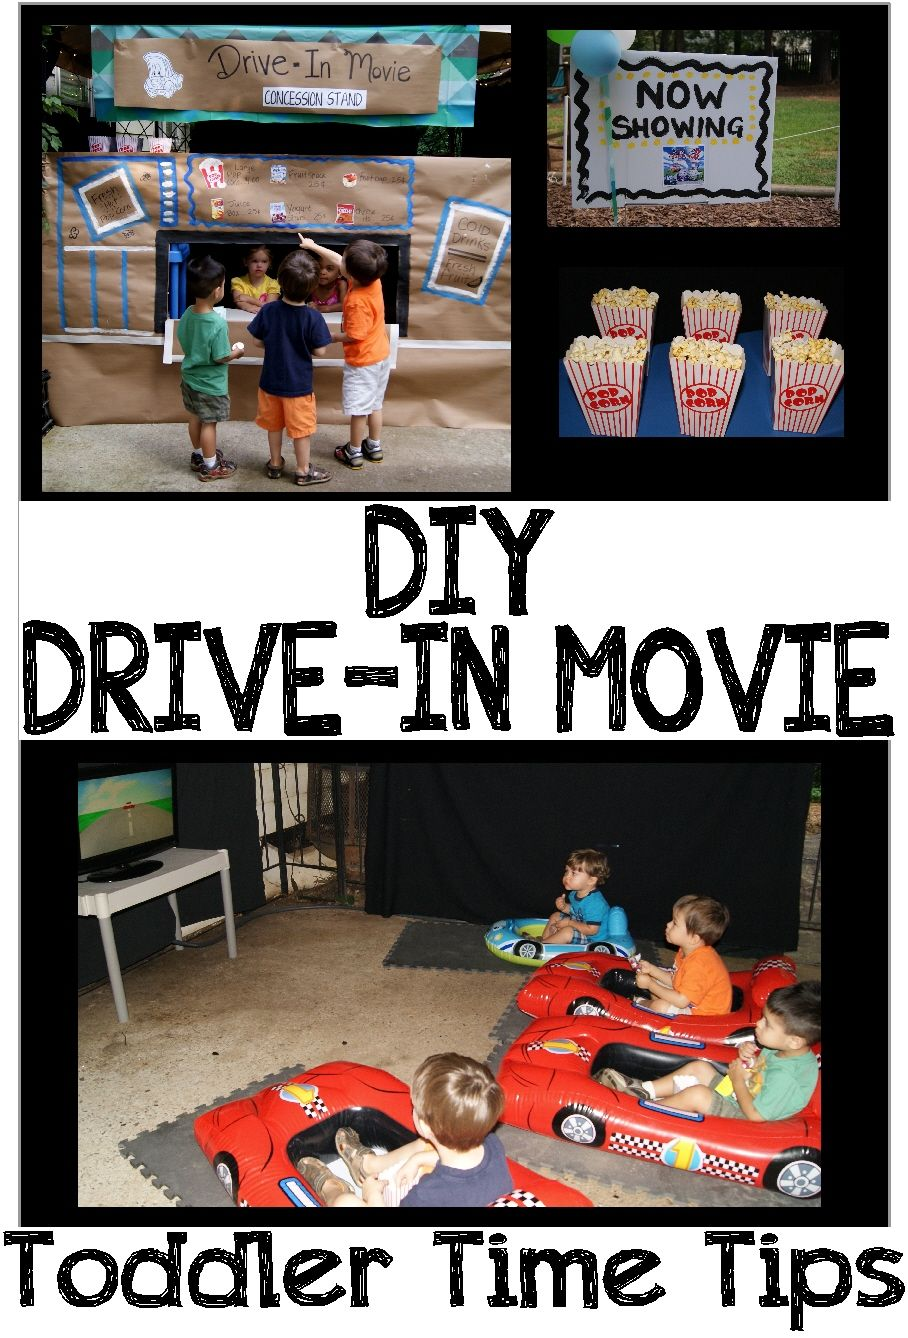 Drive in movie for details and daily activities go to